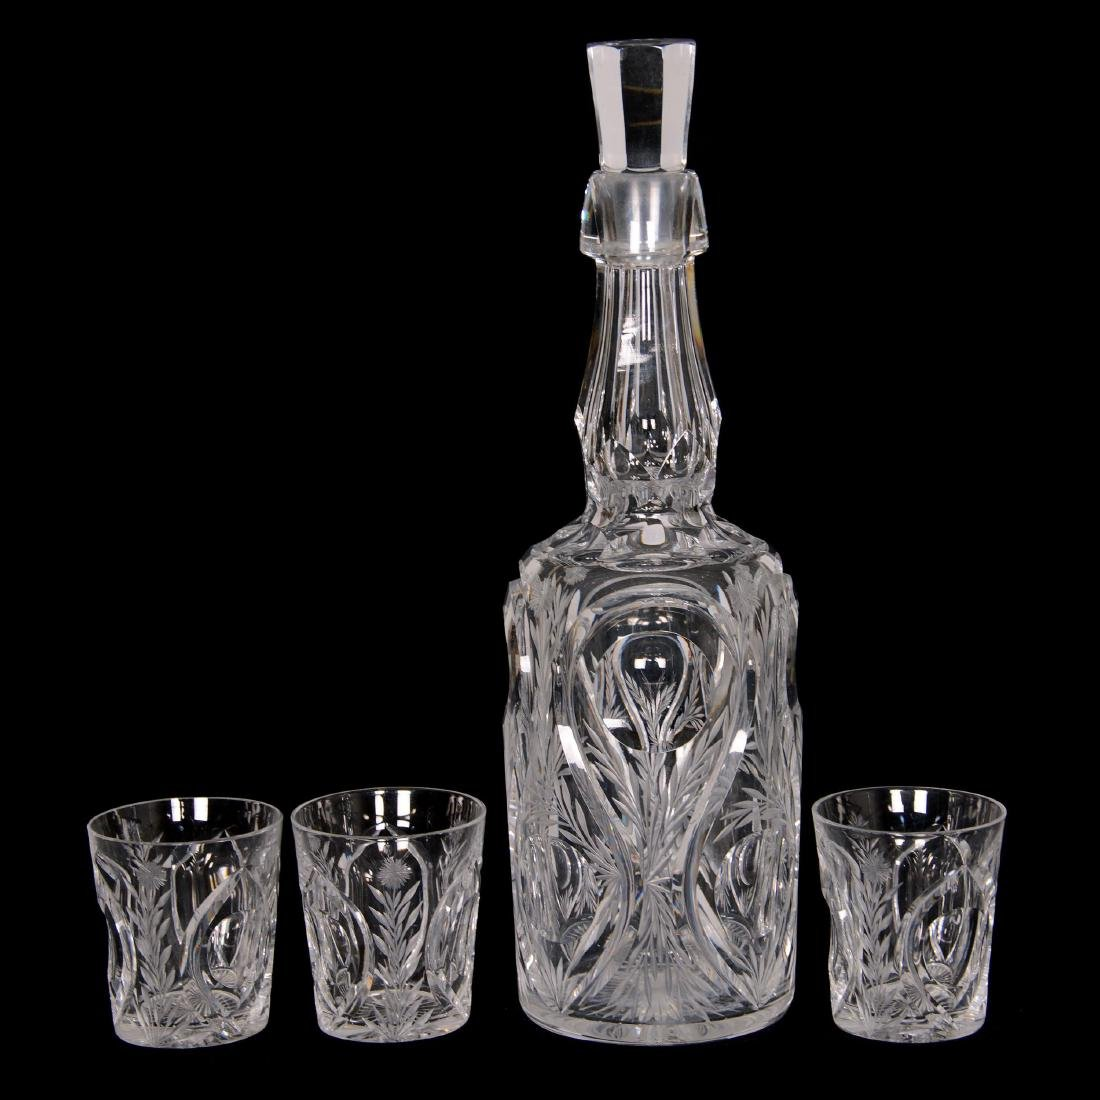 Whiskey Bottle and (3) Shot Glasses - ABCG